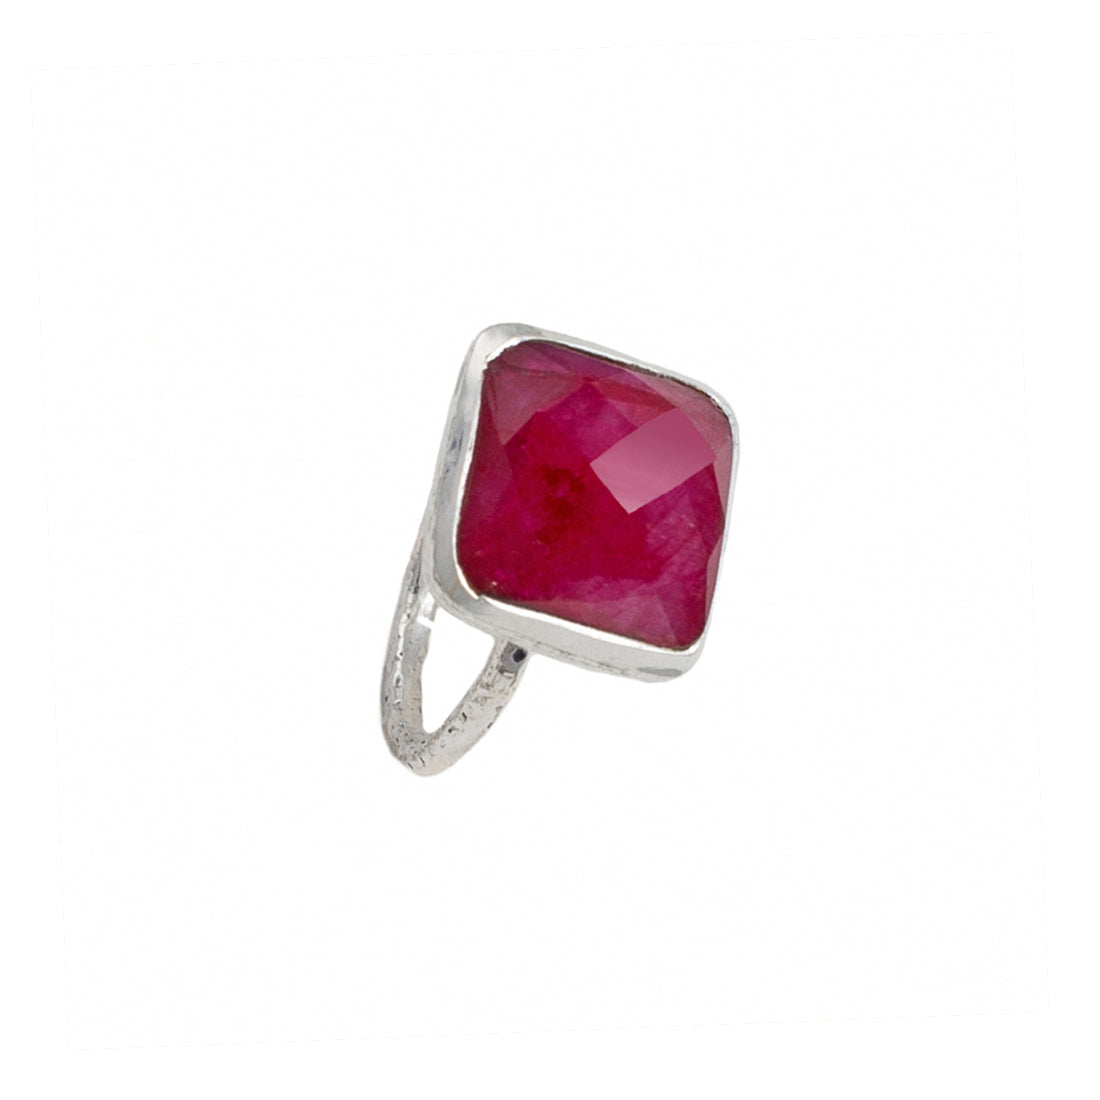 Sterling Silver Ring with Square Semiprecious Stone - Ruby Quartz